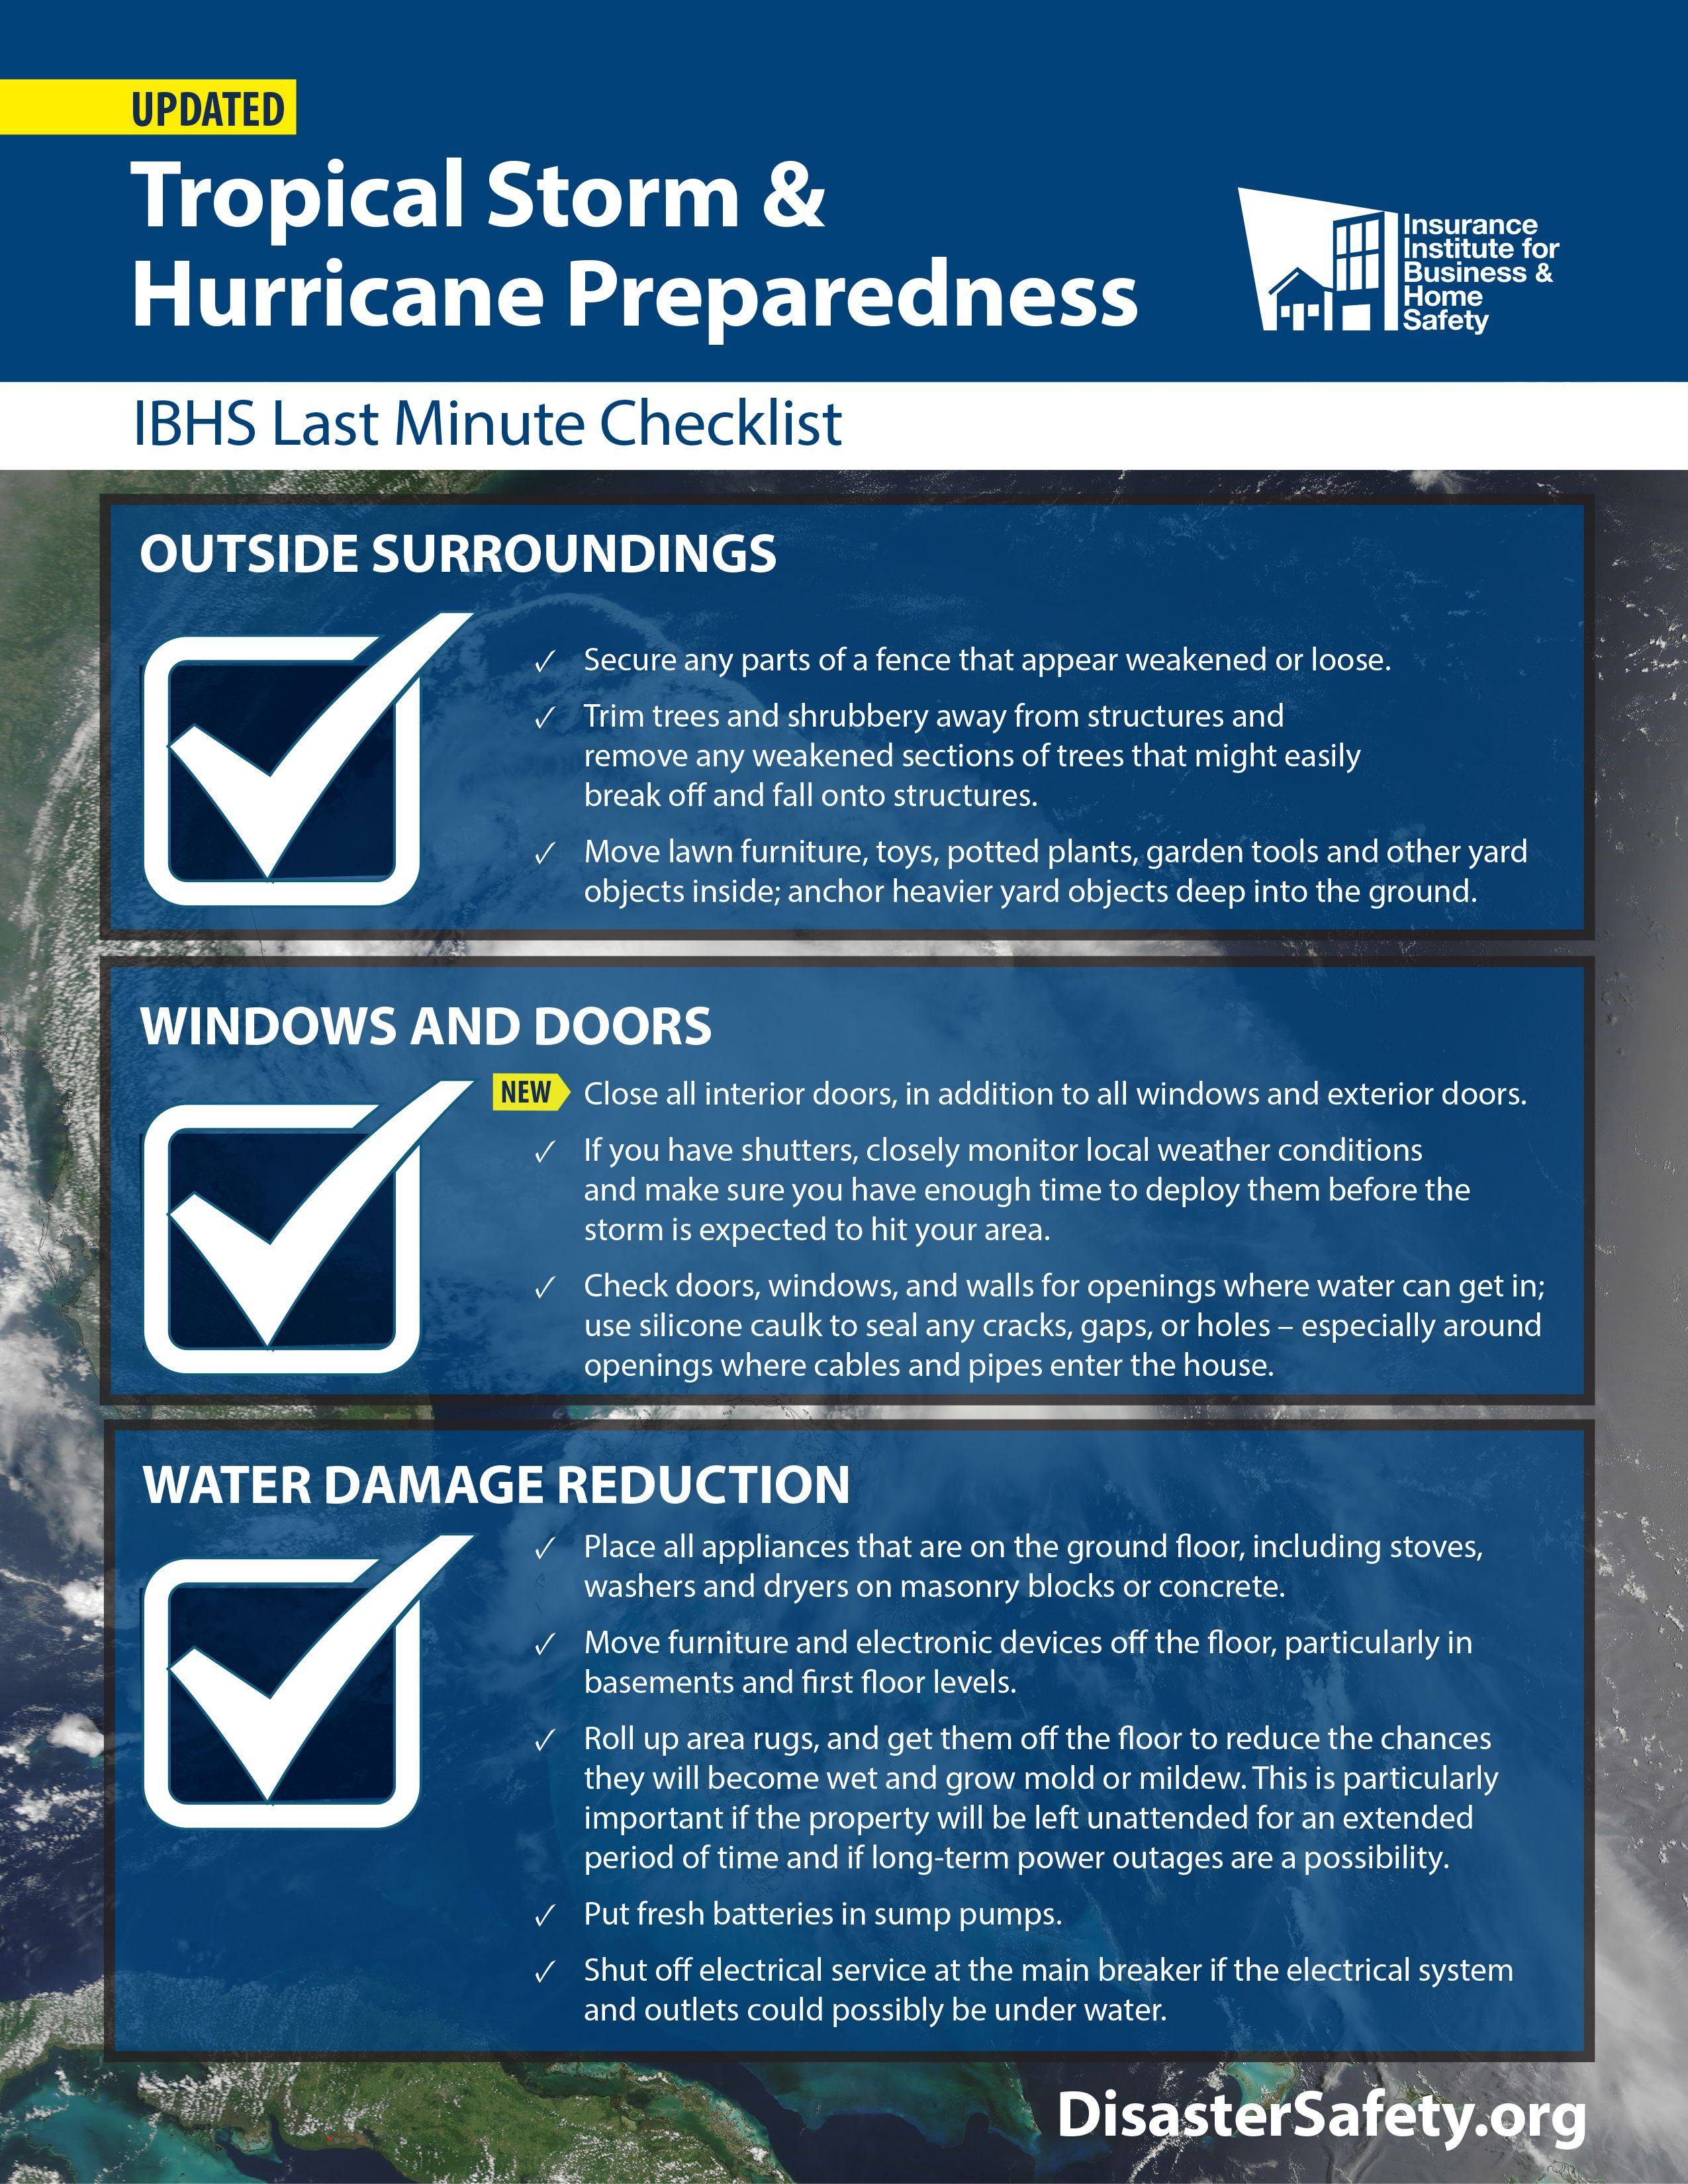 Last Minute Checklist With Images Hurricane Preparedness Hurricane Preparedness Checklist Hurricane Season